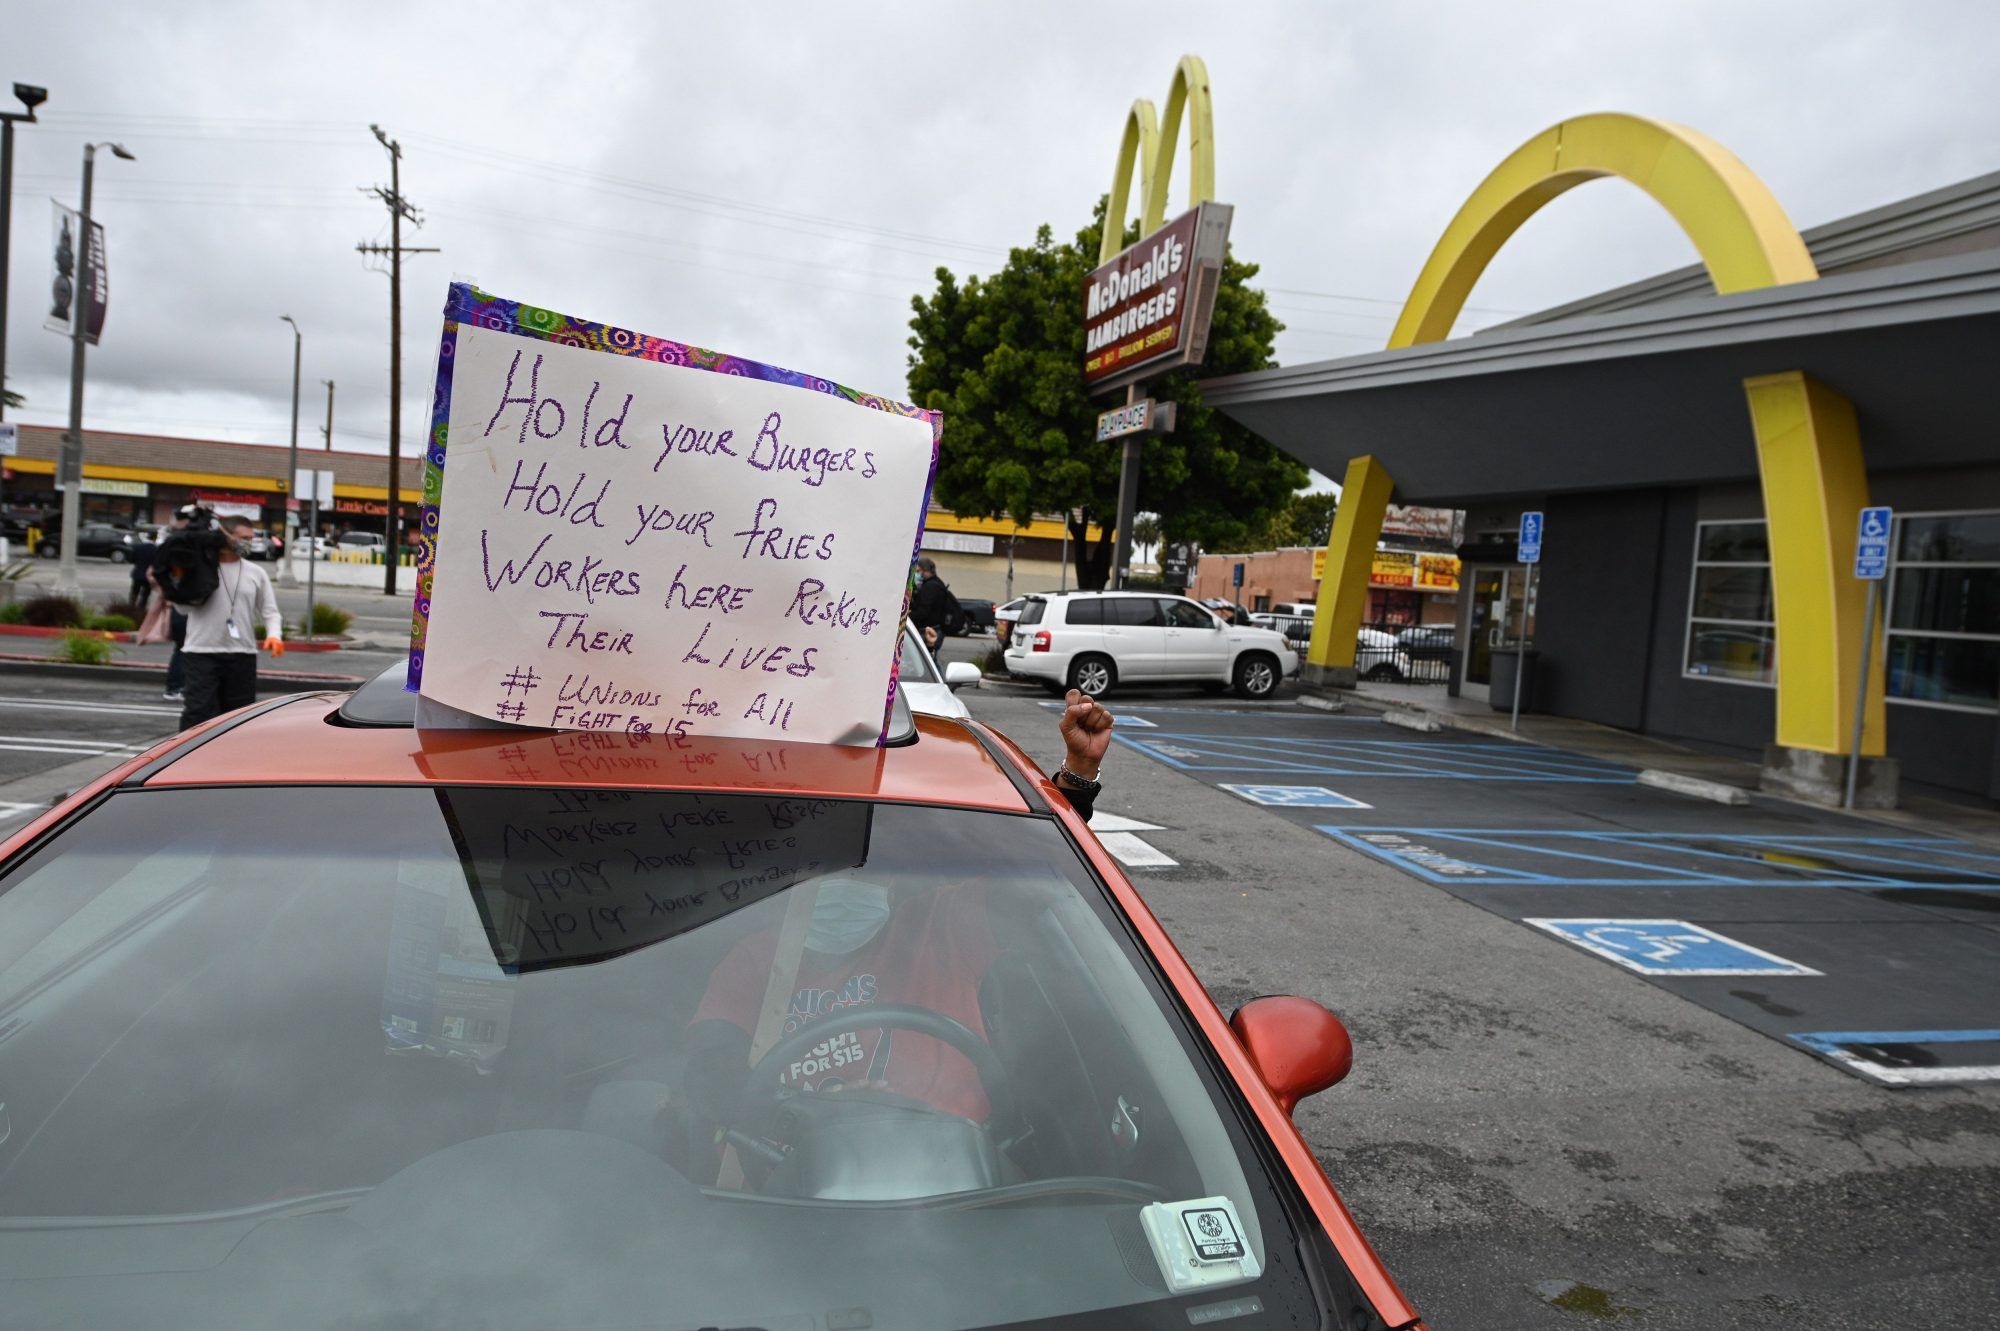 McDonald's employees and supporters protest outside a McDonald's in Los Angeles, California, April 6, 2020 demanding pay for quarantine time and healthcare for workers who get sick from the coronavirus that causes COVID-19.